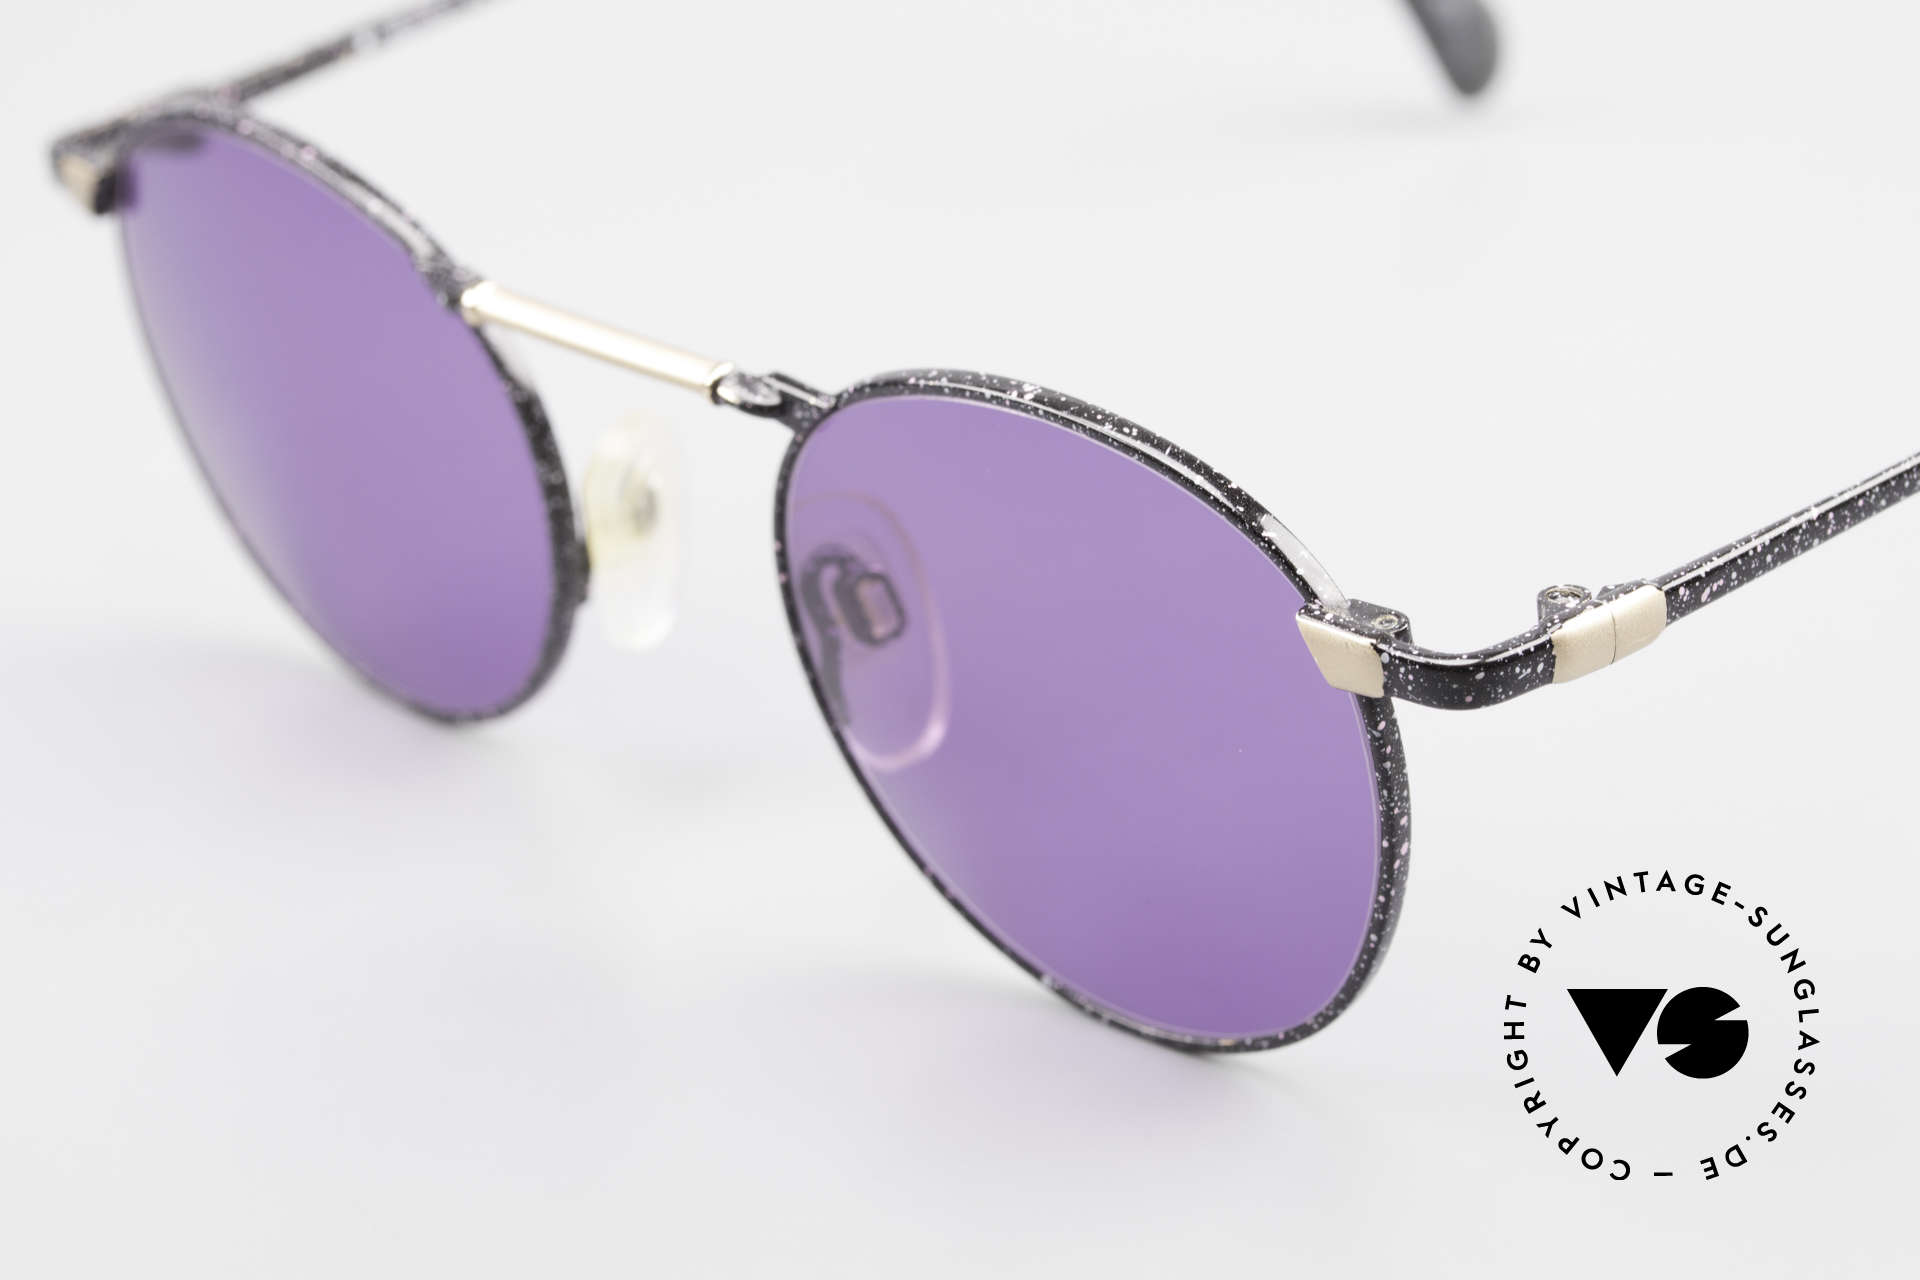 Neostyle Academic 2 80's Purple Panto Sunglasses, the frame pattern looks purple-black mottled, Made for Men and Women